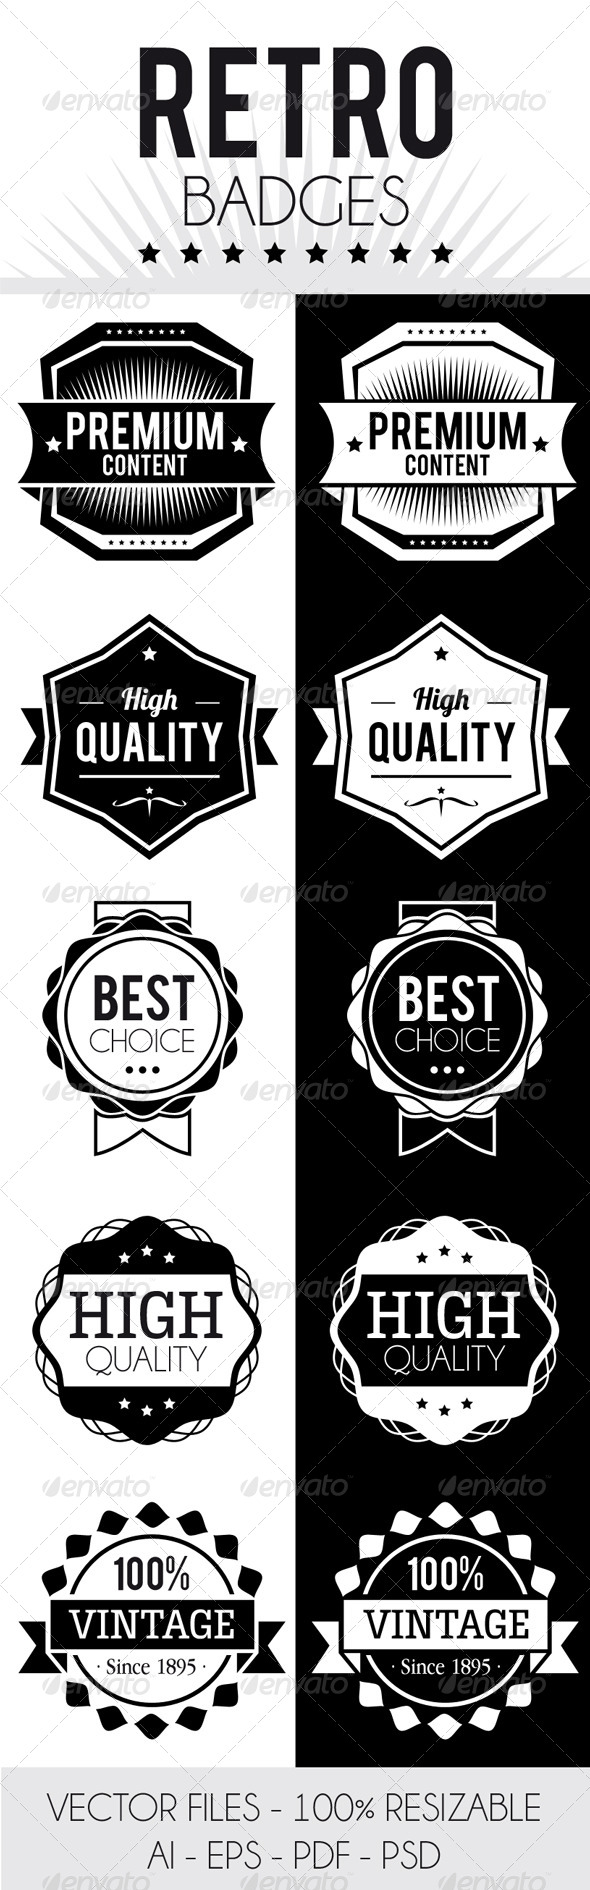 GraphicRiver Retro Badges 4514744